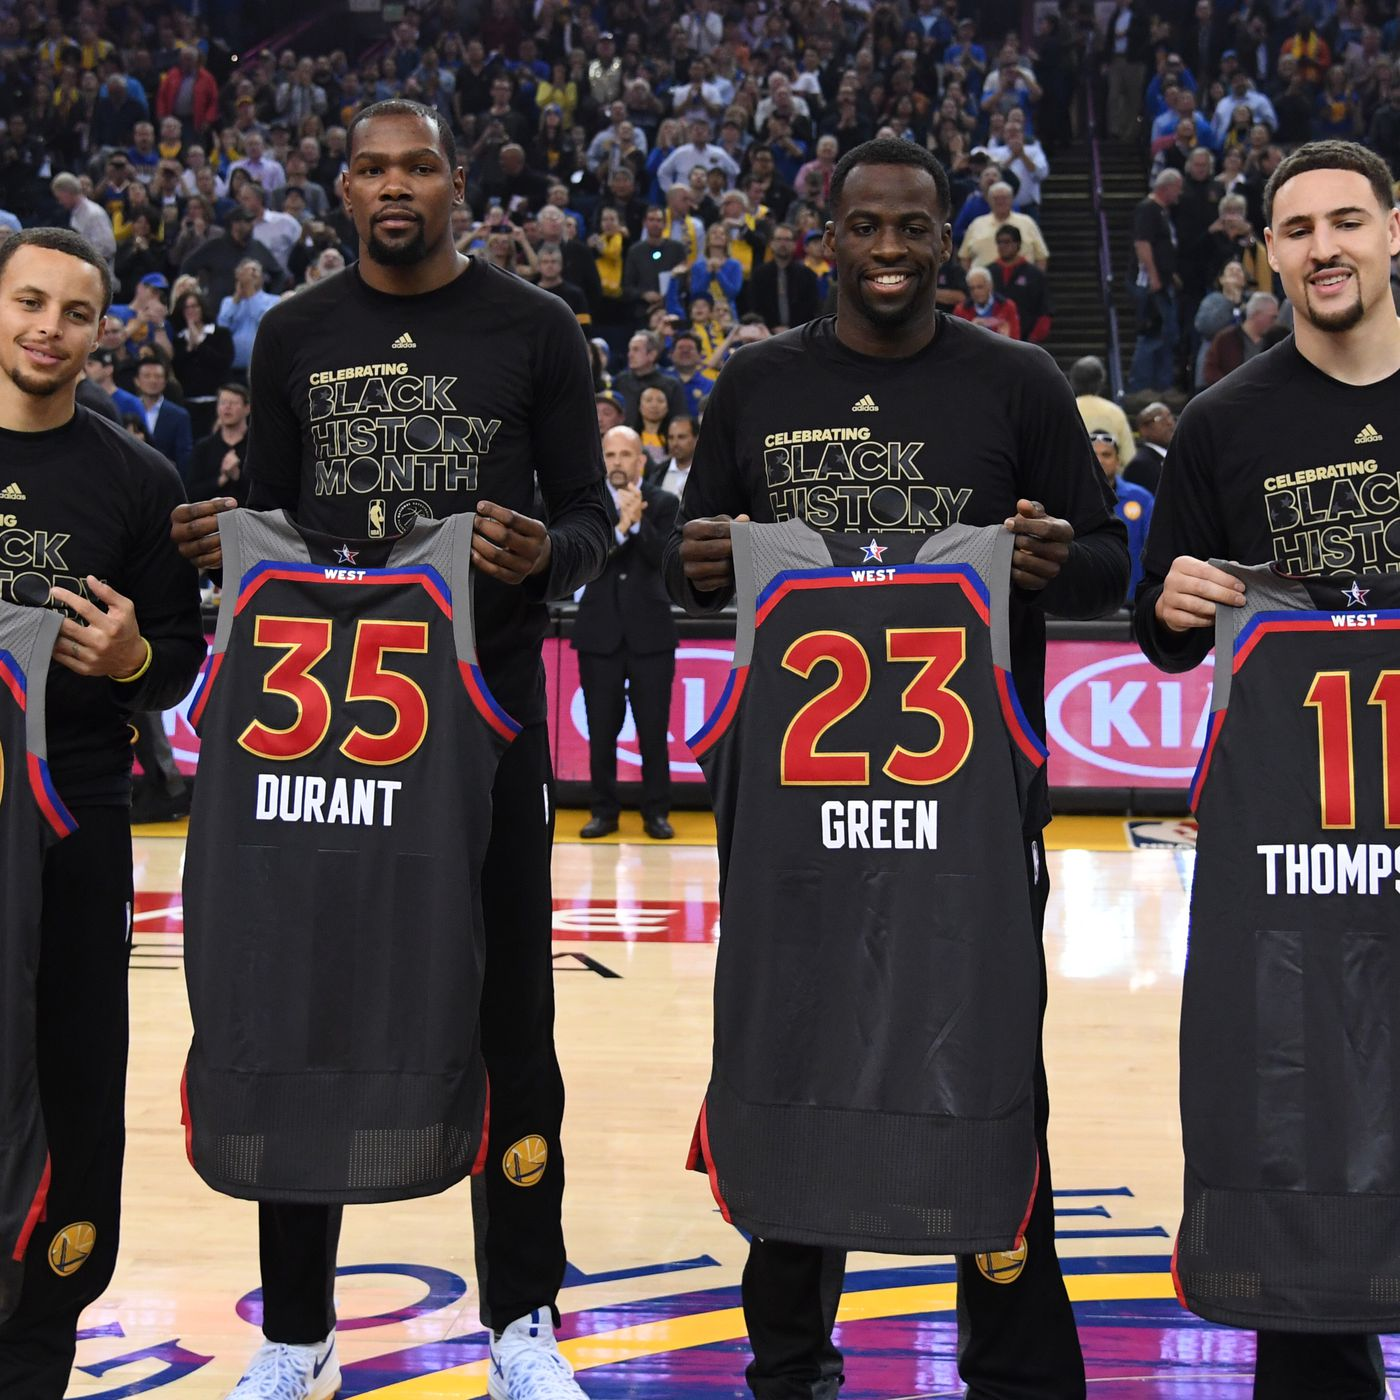 fa01c7d975f Warriors 2016-17 Gold-blooded Moment of the Year - Golden State Of Mind